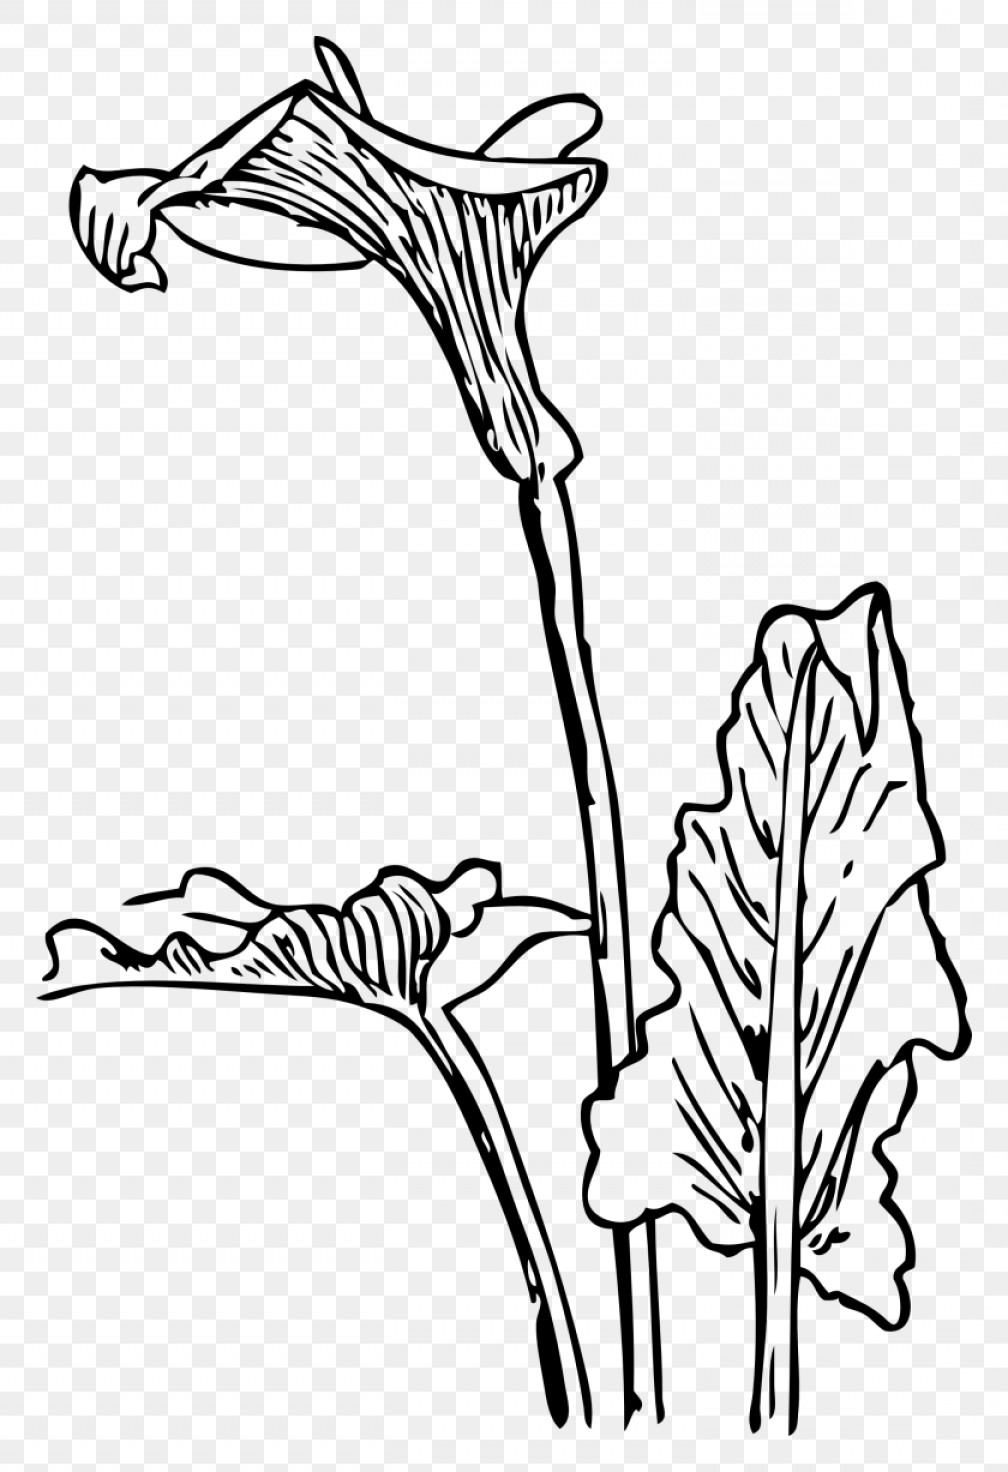 Lily Vector Art: Lilly Clip Art Free Vector Free Clipart Easter Lily